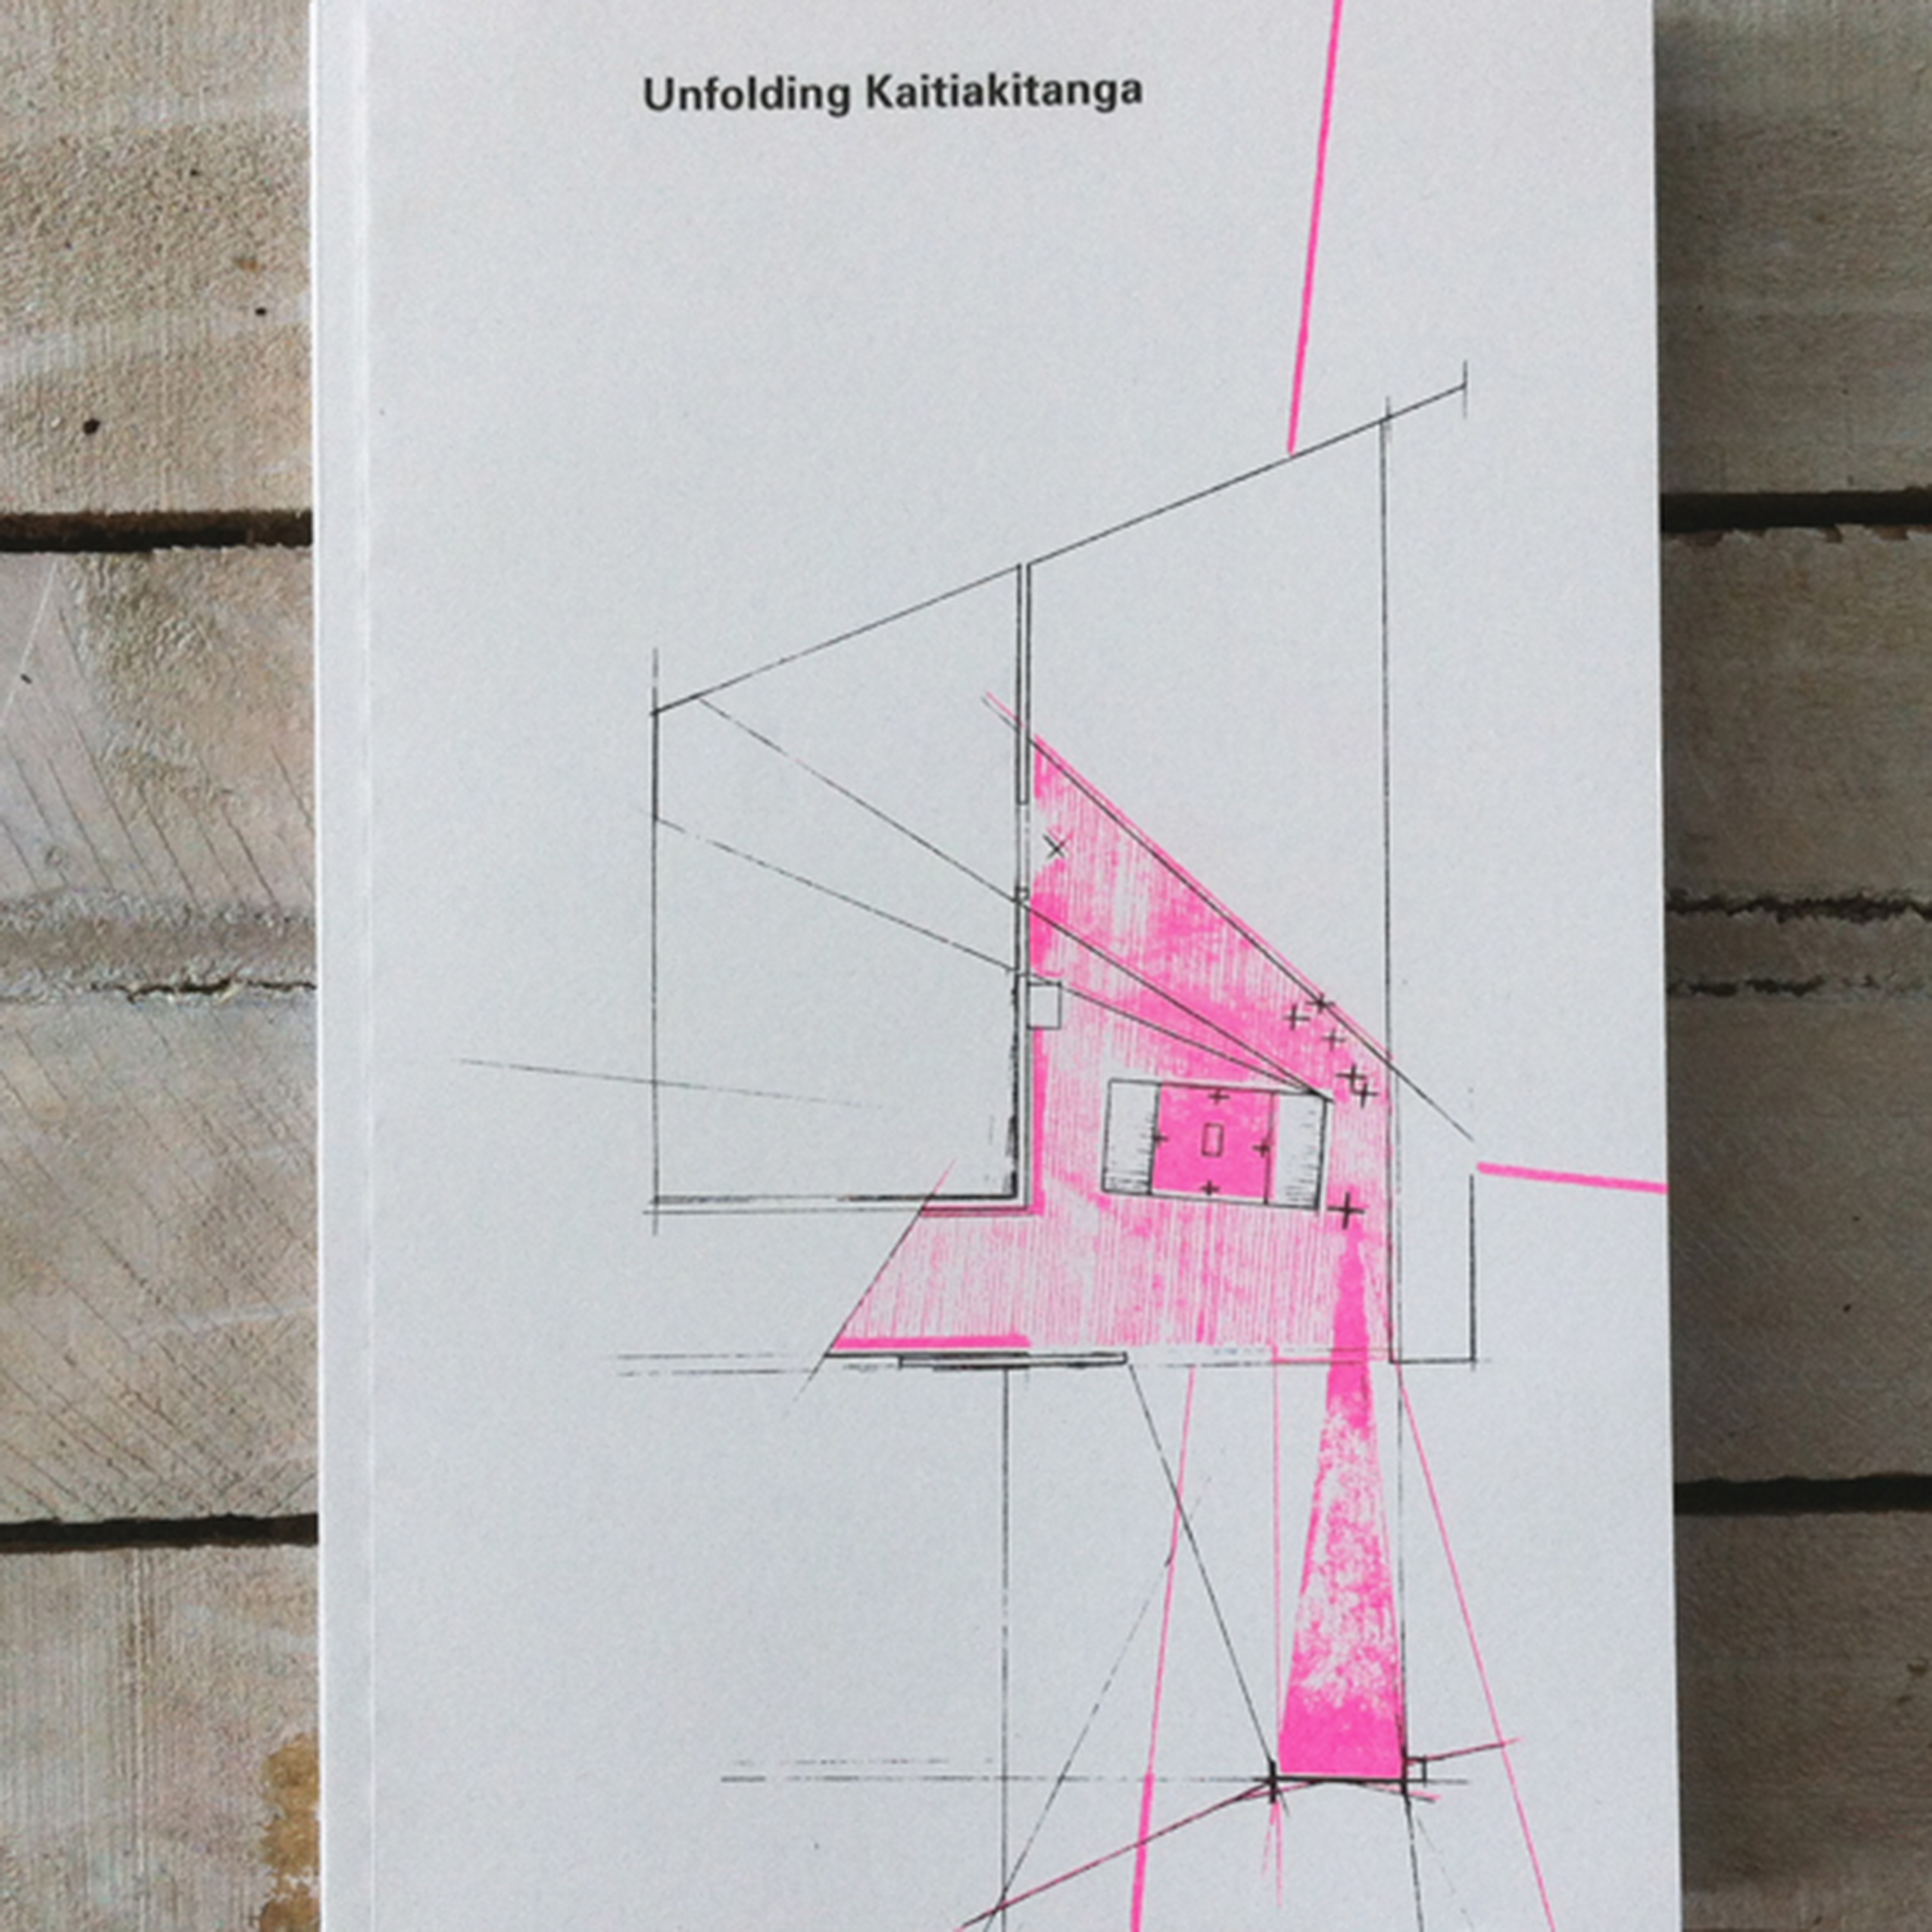 Photograph by Tanya Ruka of Unfolding Kaitiakitanga book cover (2016).